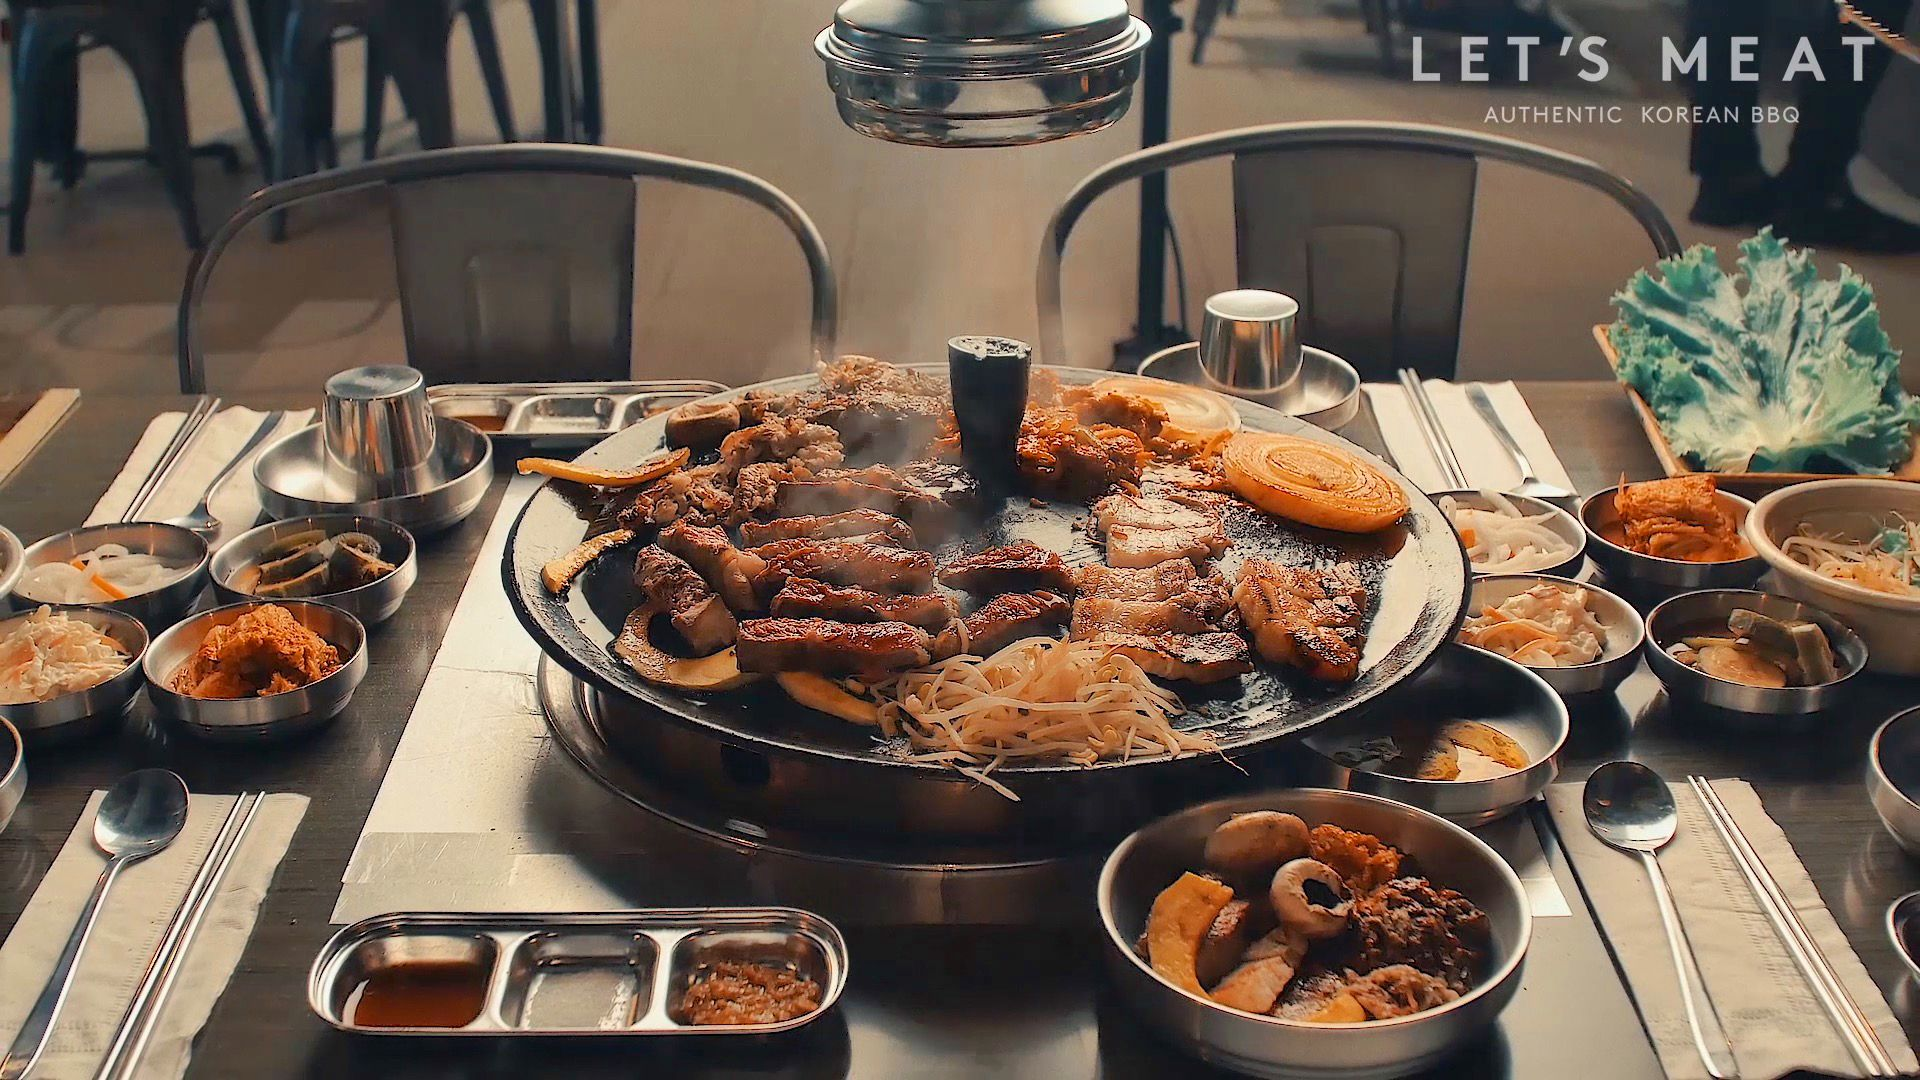 Let S Meat Bbq All You Can Eat Korean Bbq Buffet Ayce Barbecue Restaurant Korean Bbq Buffet Korean Barbecue